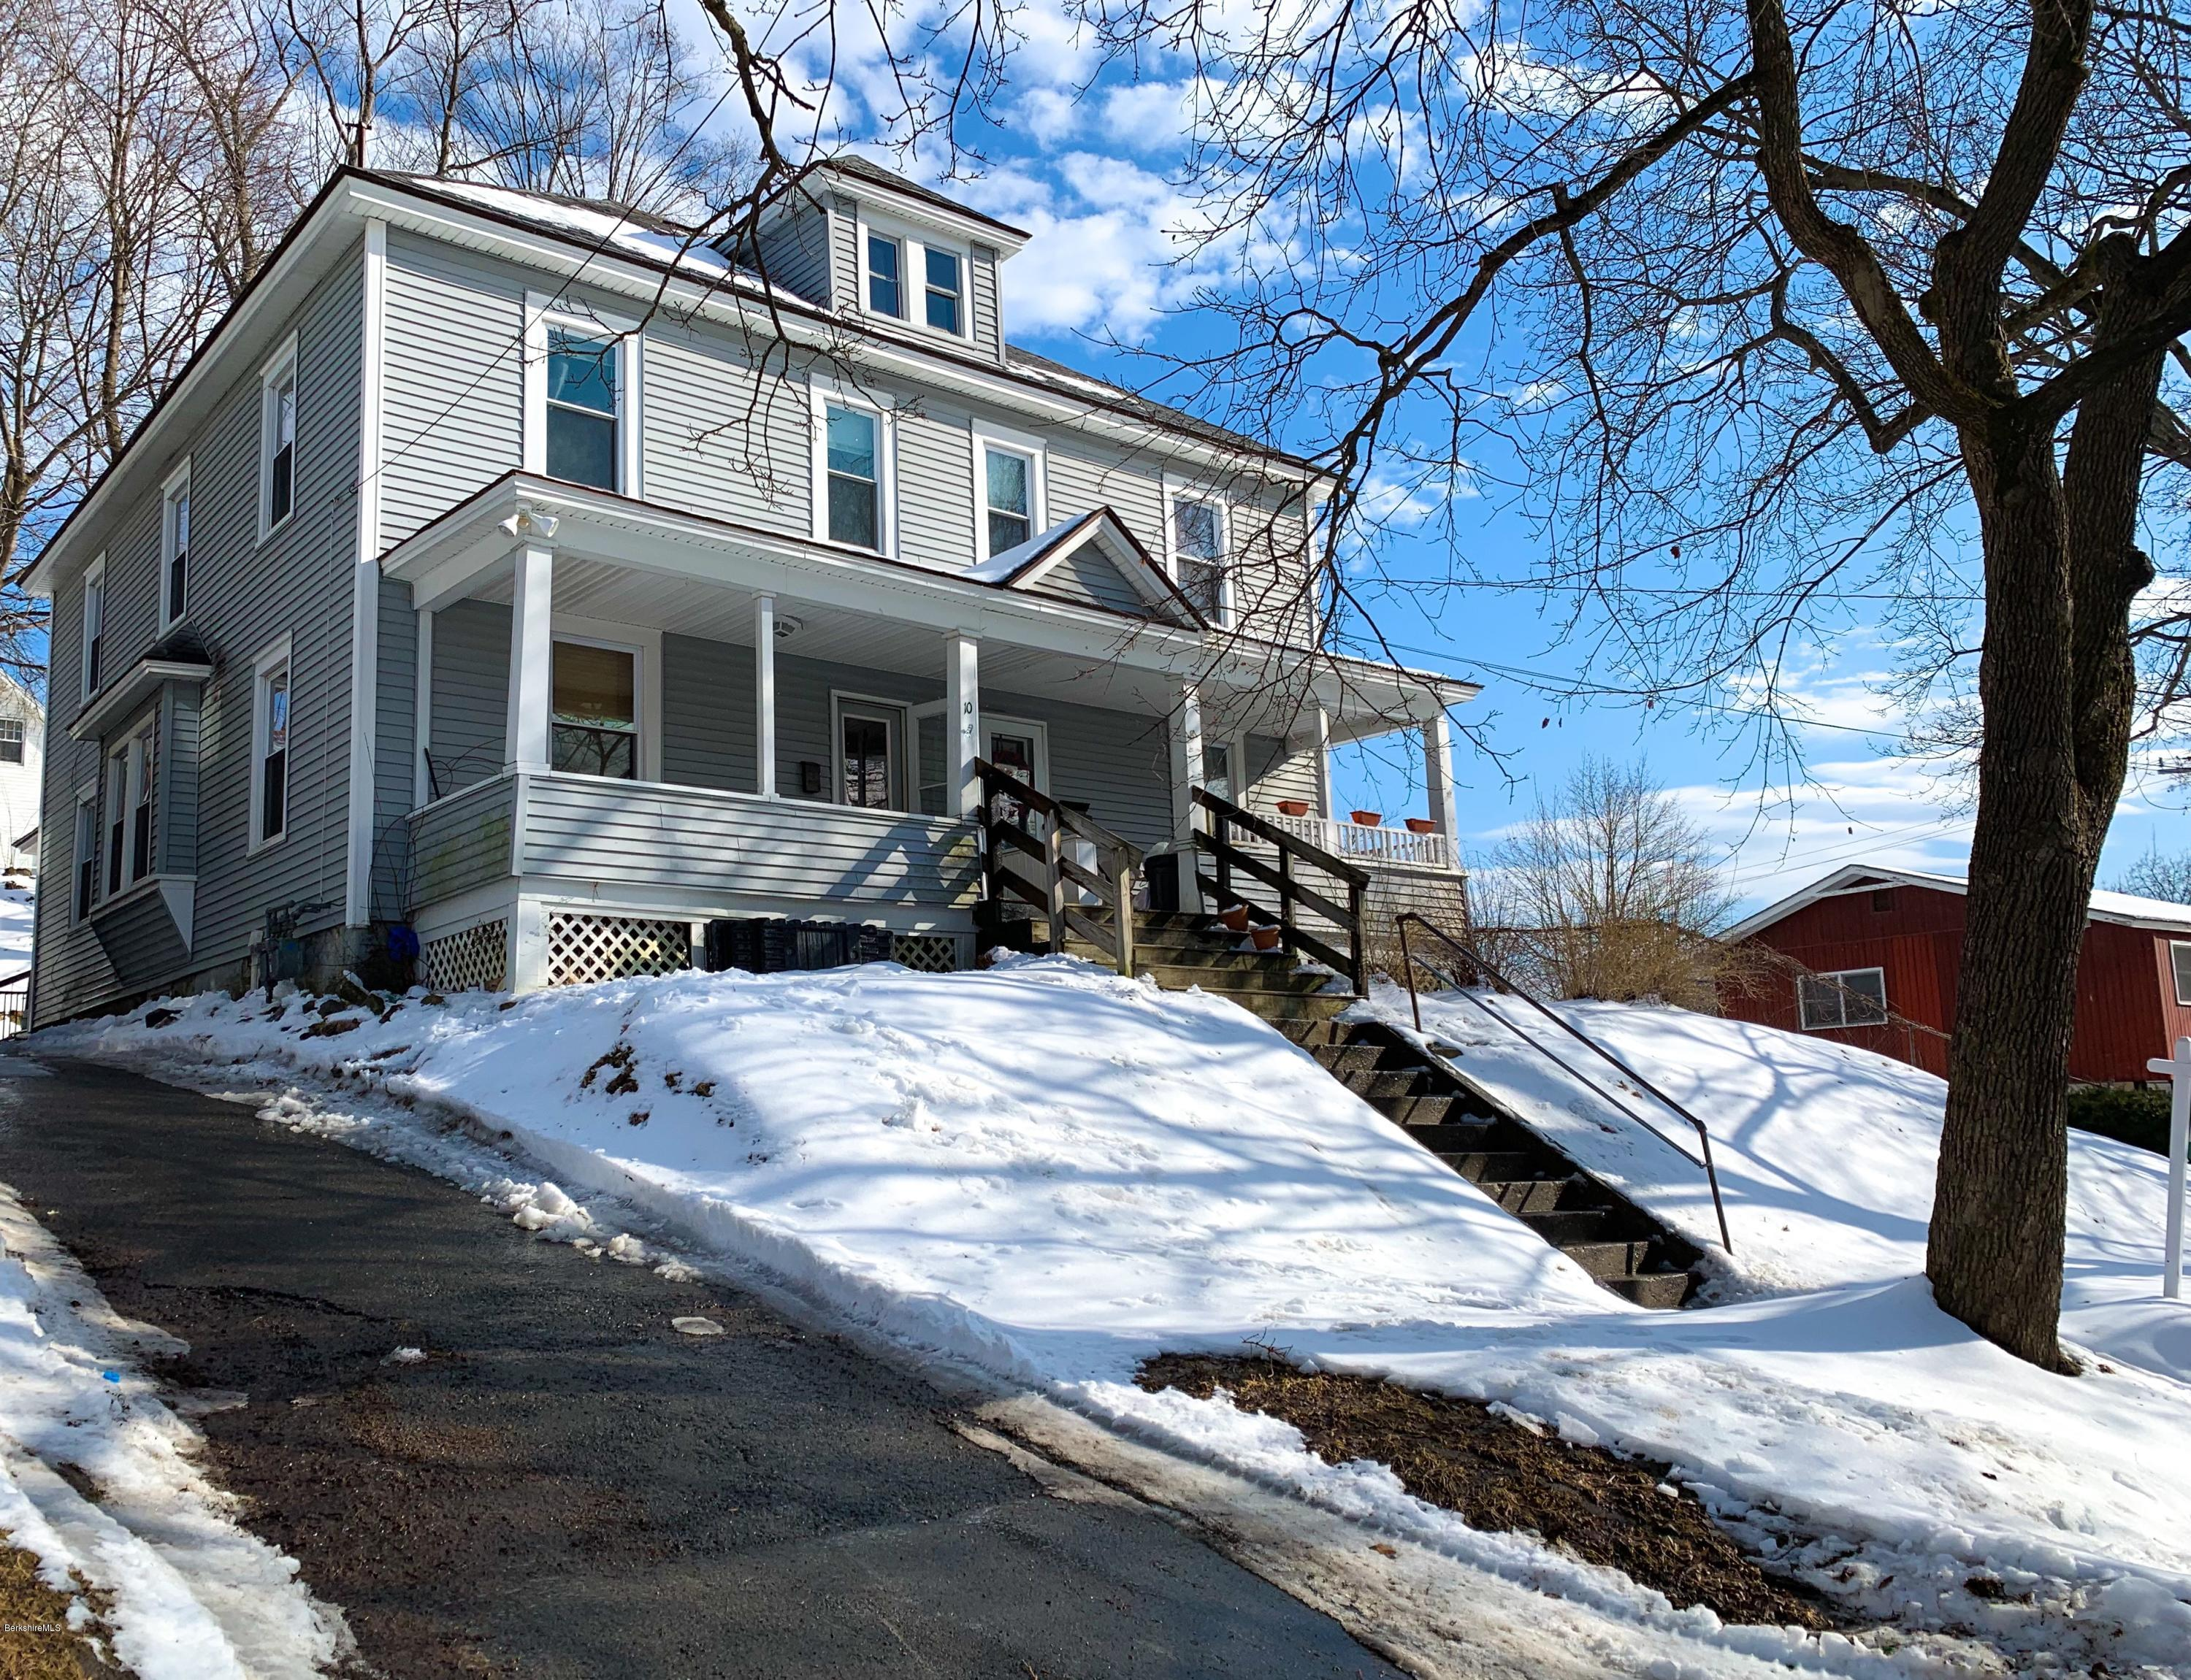 8-10 Scammell Ave Pittsfield MA 01201